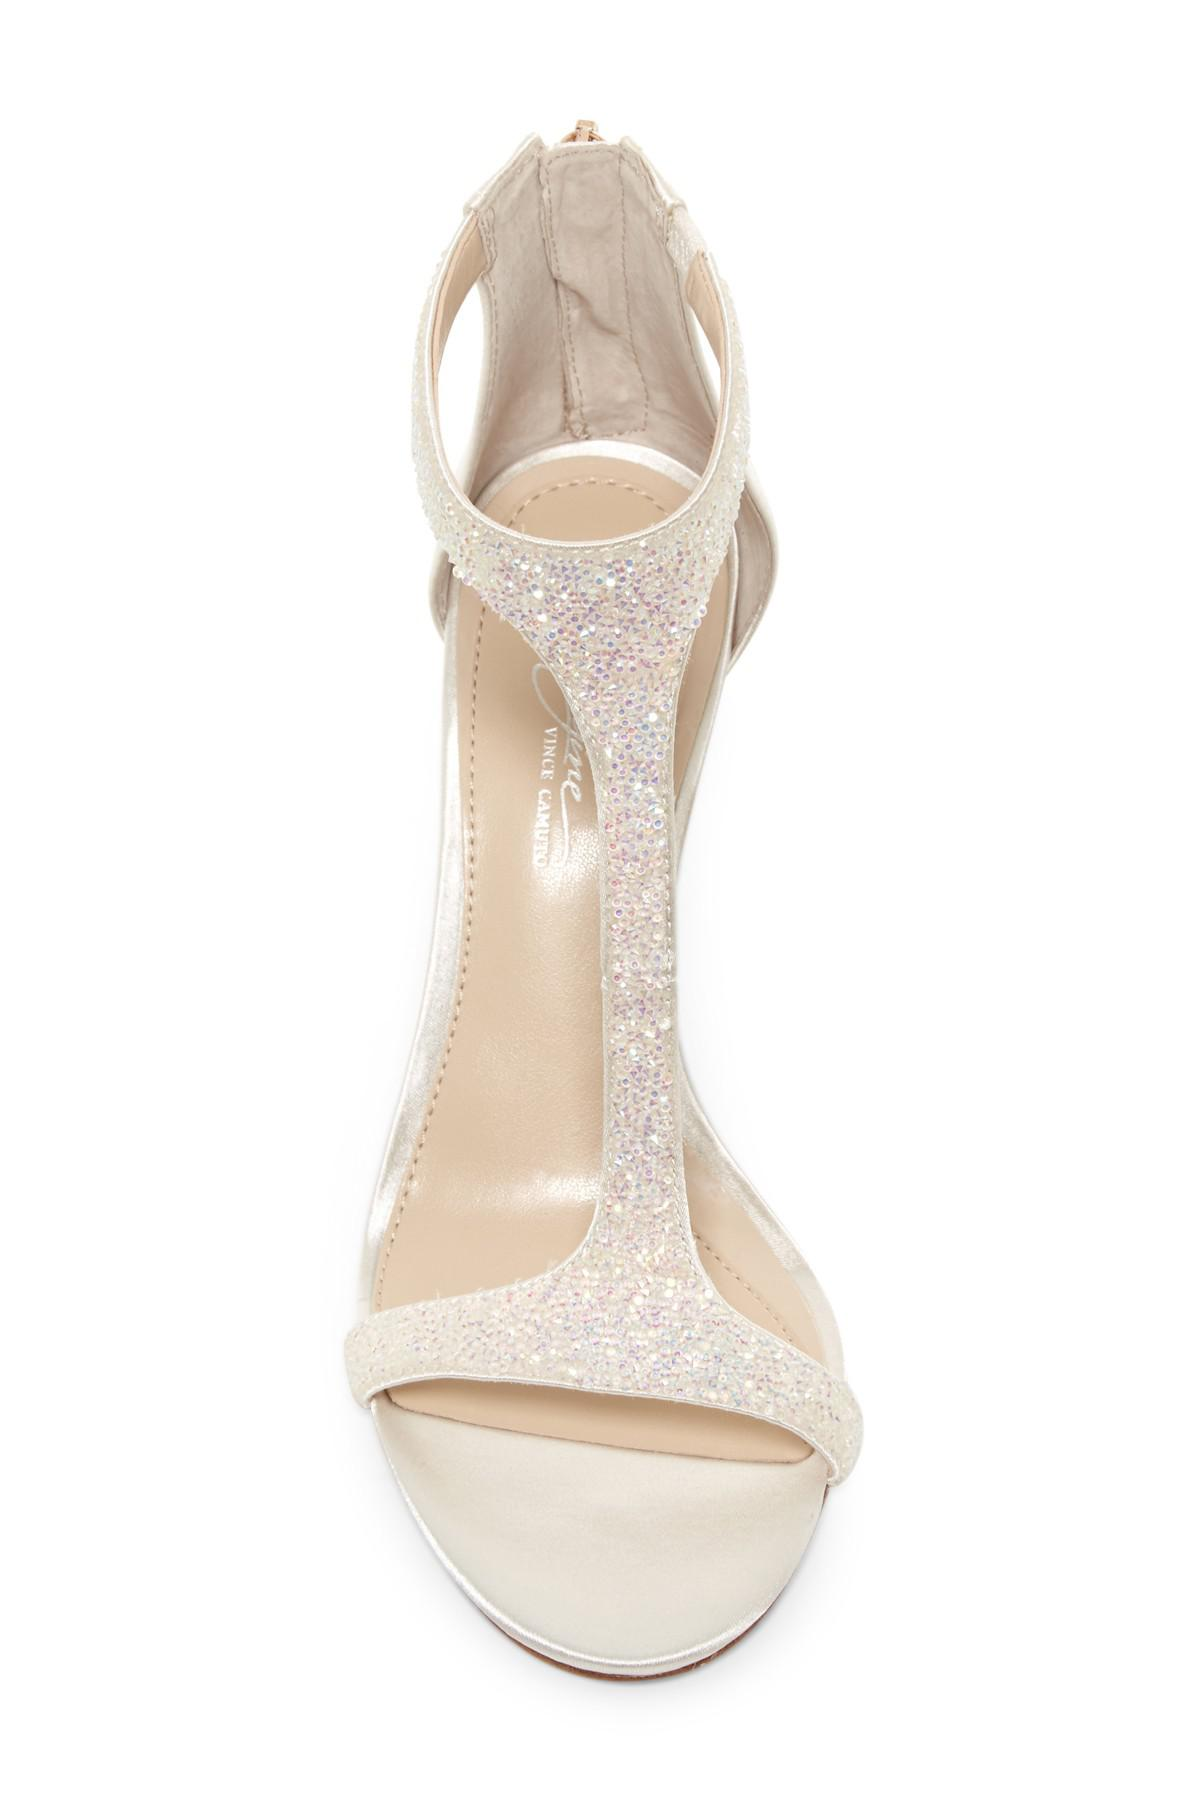 60e8211d73a1 Lyst - Imagine Vince Camuto Phoebe Embellished Leather T-strap ...